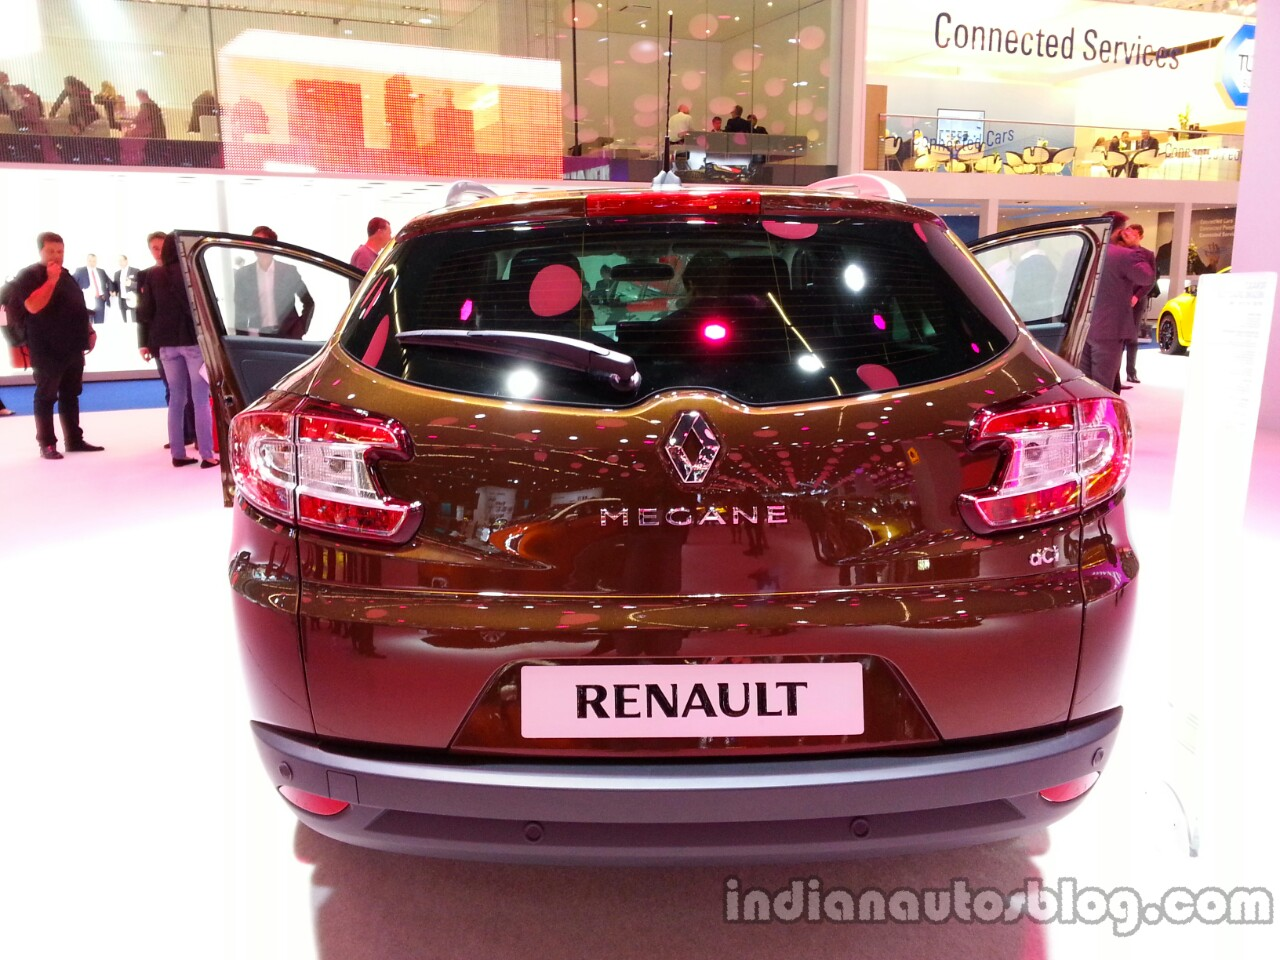 Rear of the 2014 Renault Megane estate